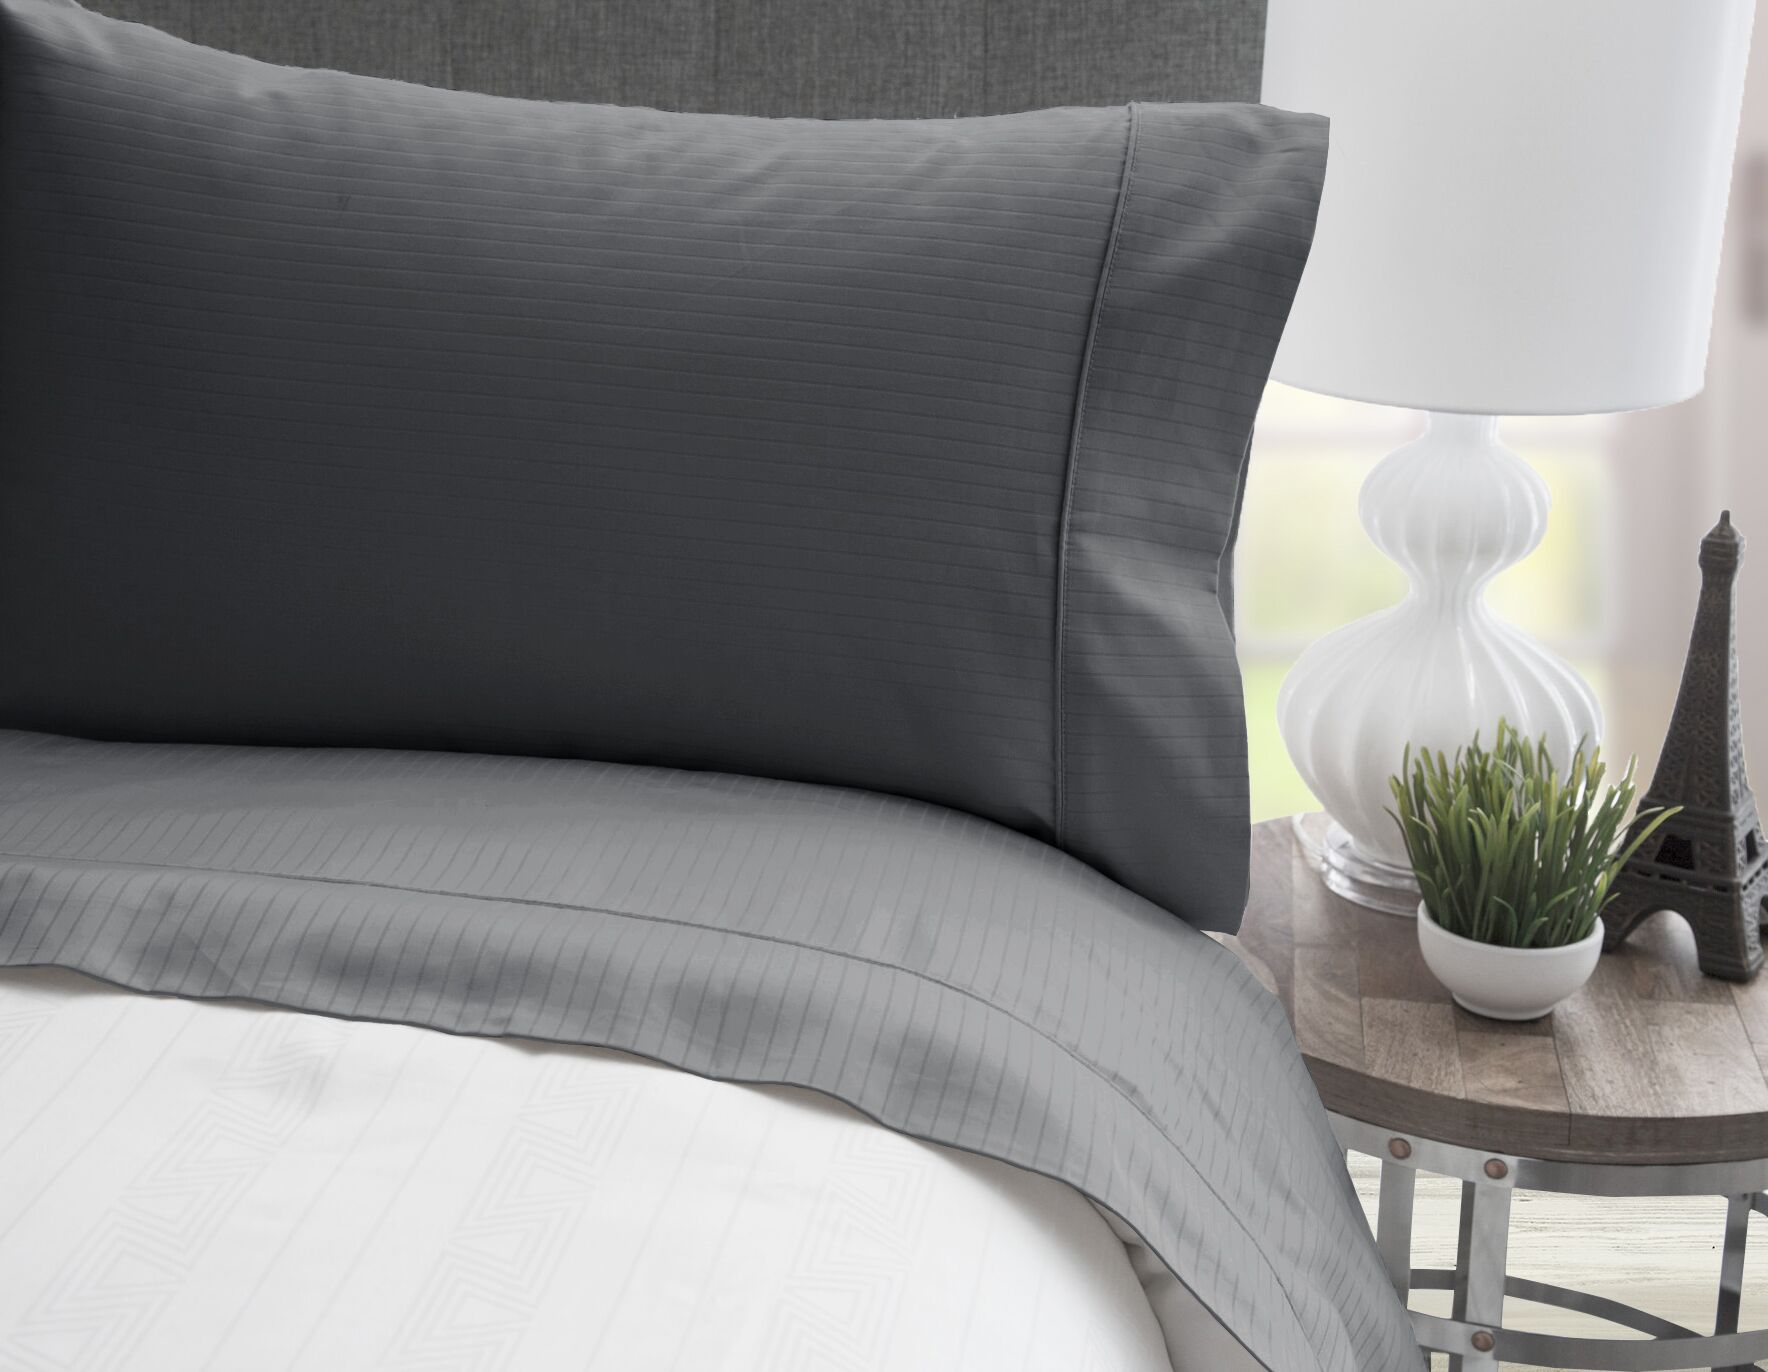 4 Piece 600 Thread Count 100% Egyptian Quality Cotton Stripe Sheet Set Size: Queen, Color: Charcoal